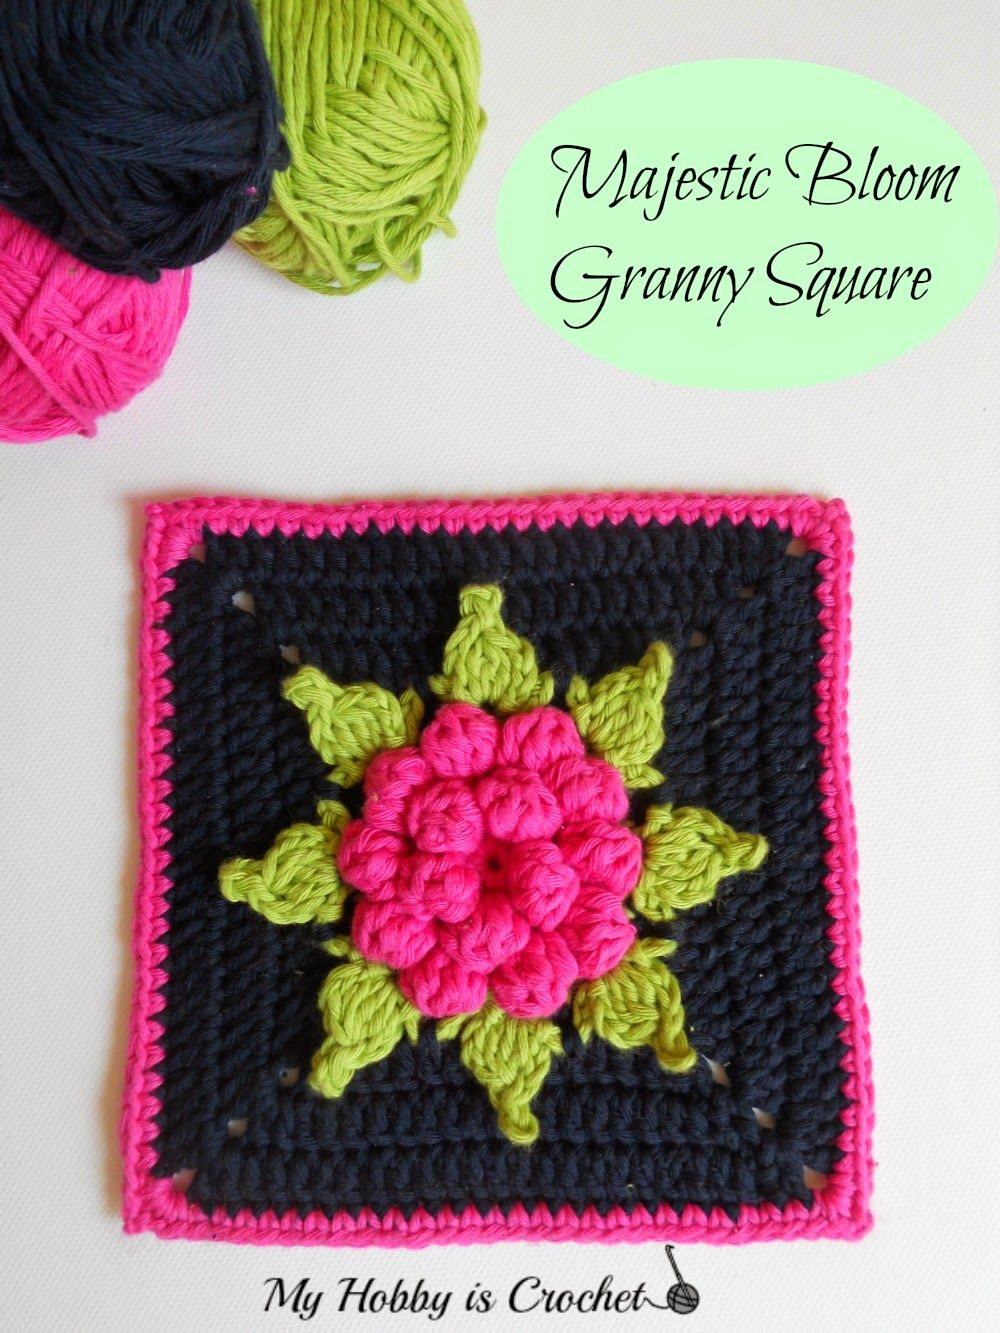 Friday faves in food and fiber arts 4 granny squares free crochet motif majestic bloom granny square bankloansurffo Image collections